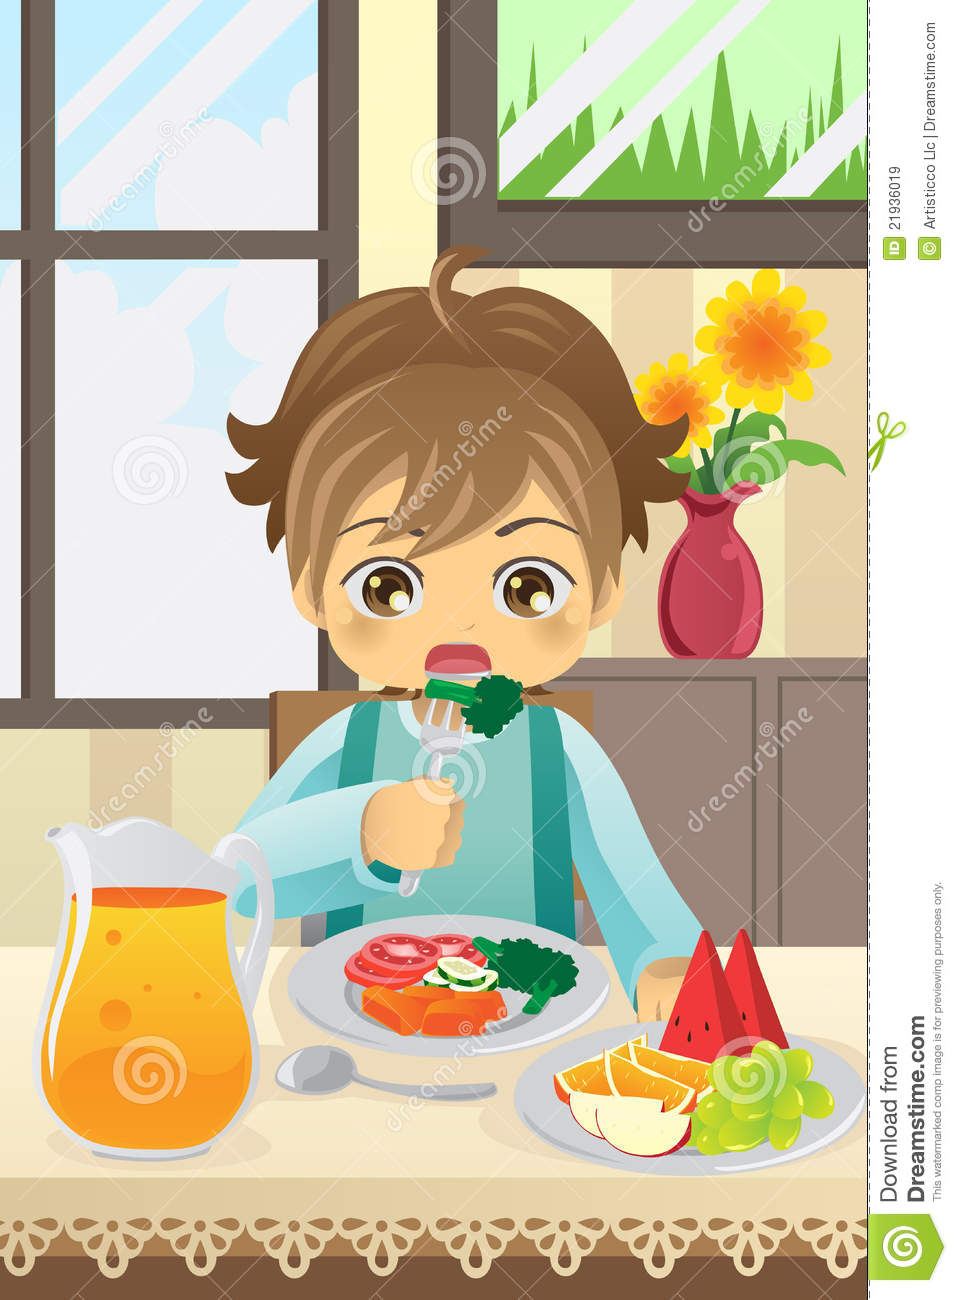 Dining Room Drawing: Boy Eating Vegetables Royalty Free Stock Images